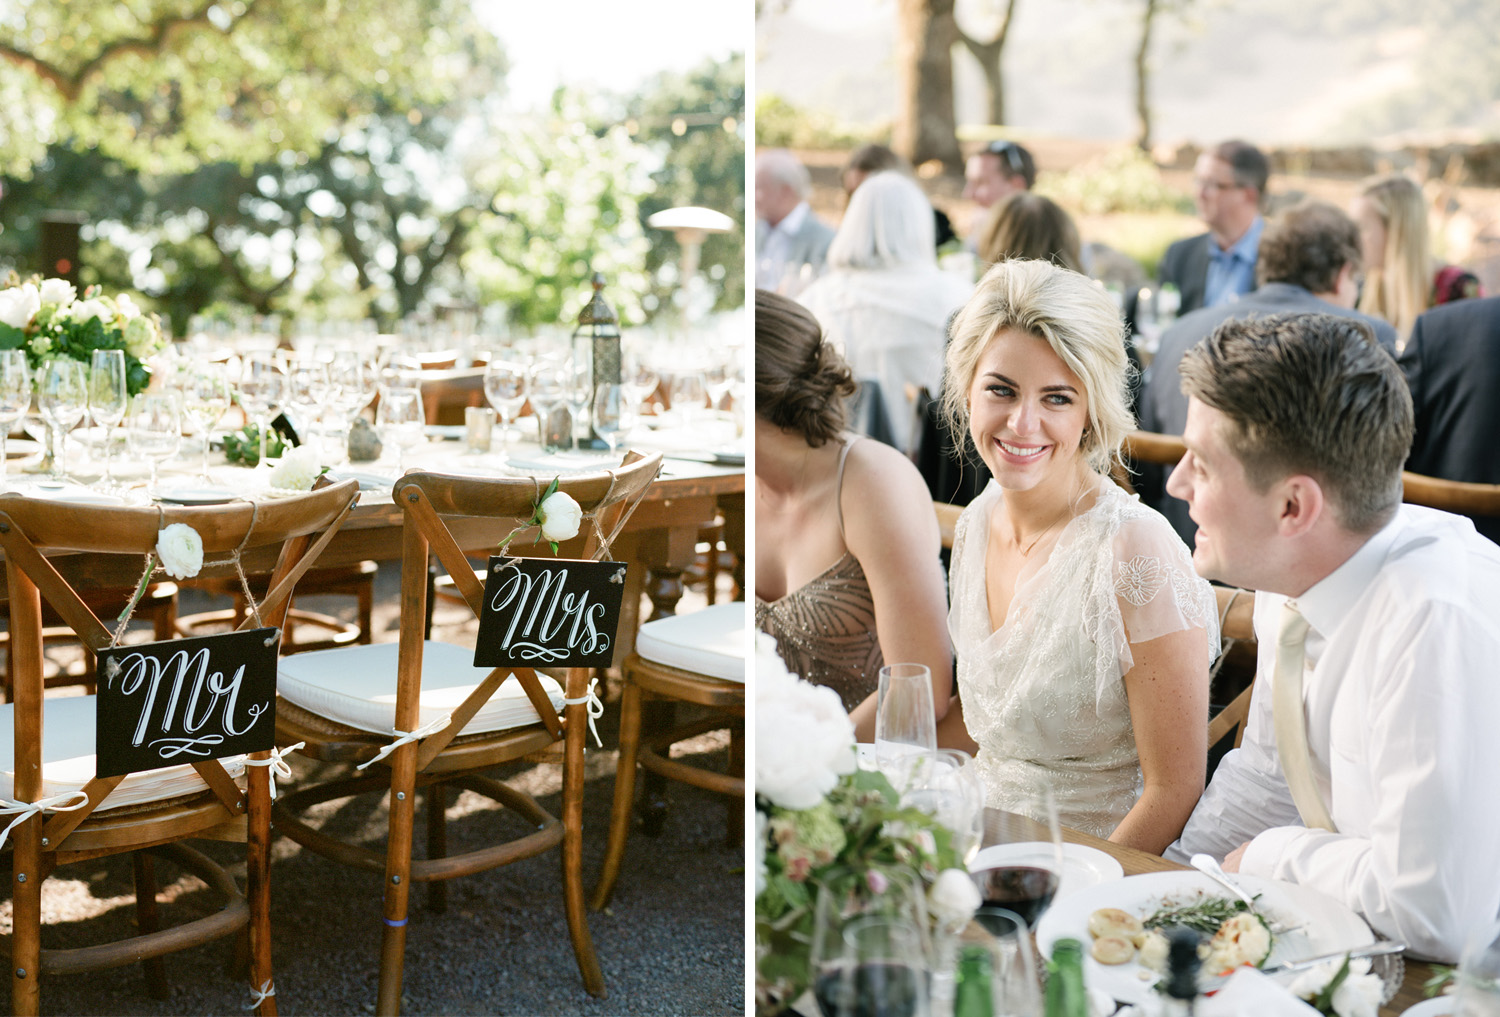 Sylvie-Gil-film-destination-wedding-photography-kunde-winery-napa-shabby-chic-toasts.jpg